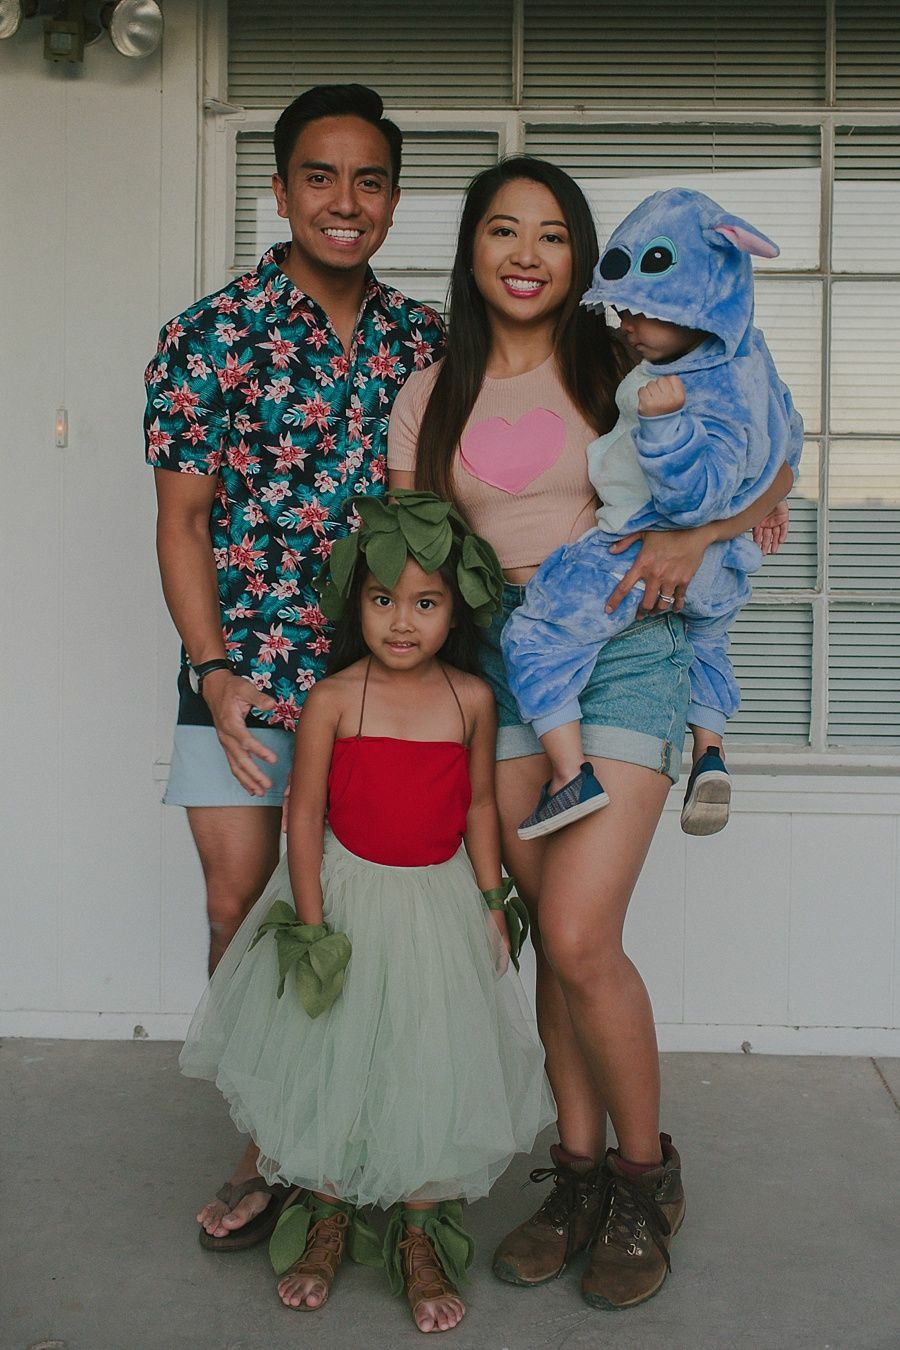 Lilo Stitch Family Halloween Costumes In 2020 Family Halloween Costumes Lilo And Stitch Costume Kids Halloween Costume Outfits